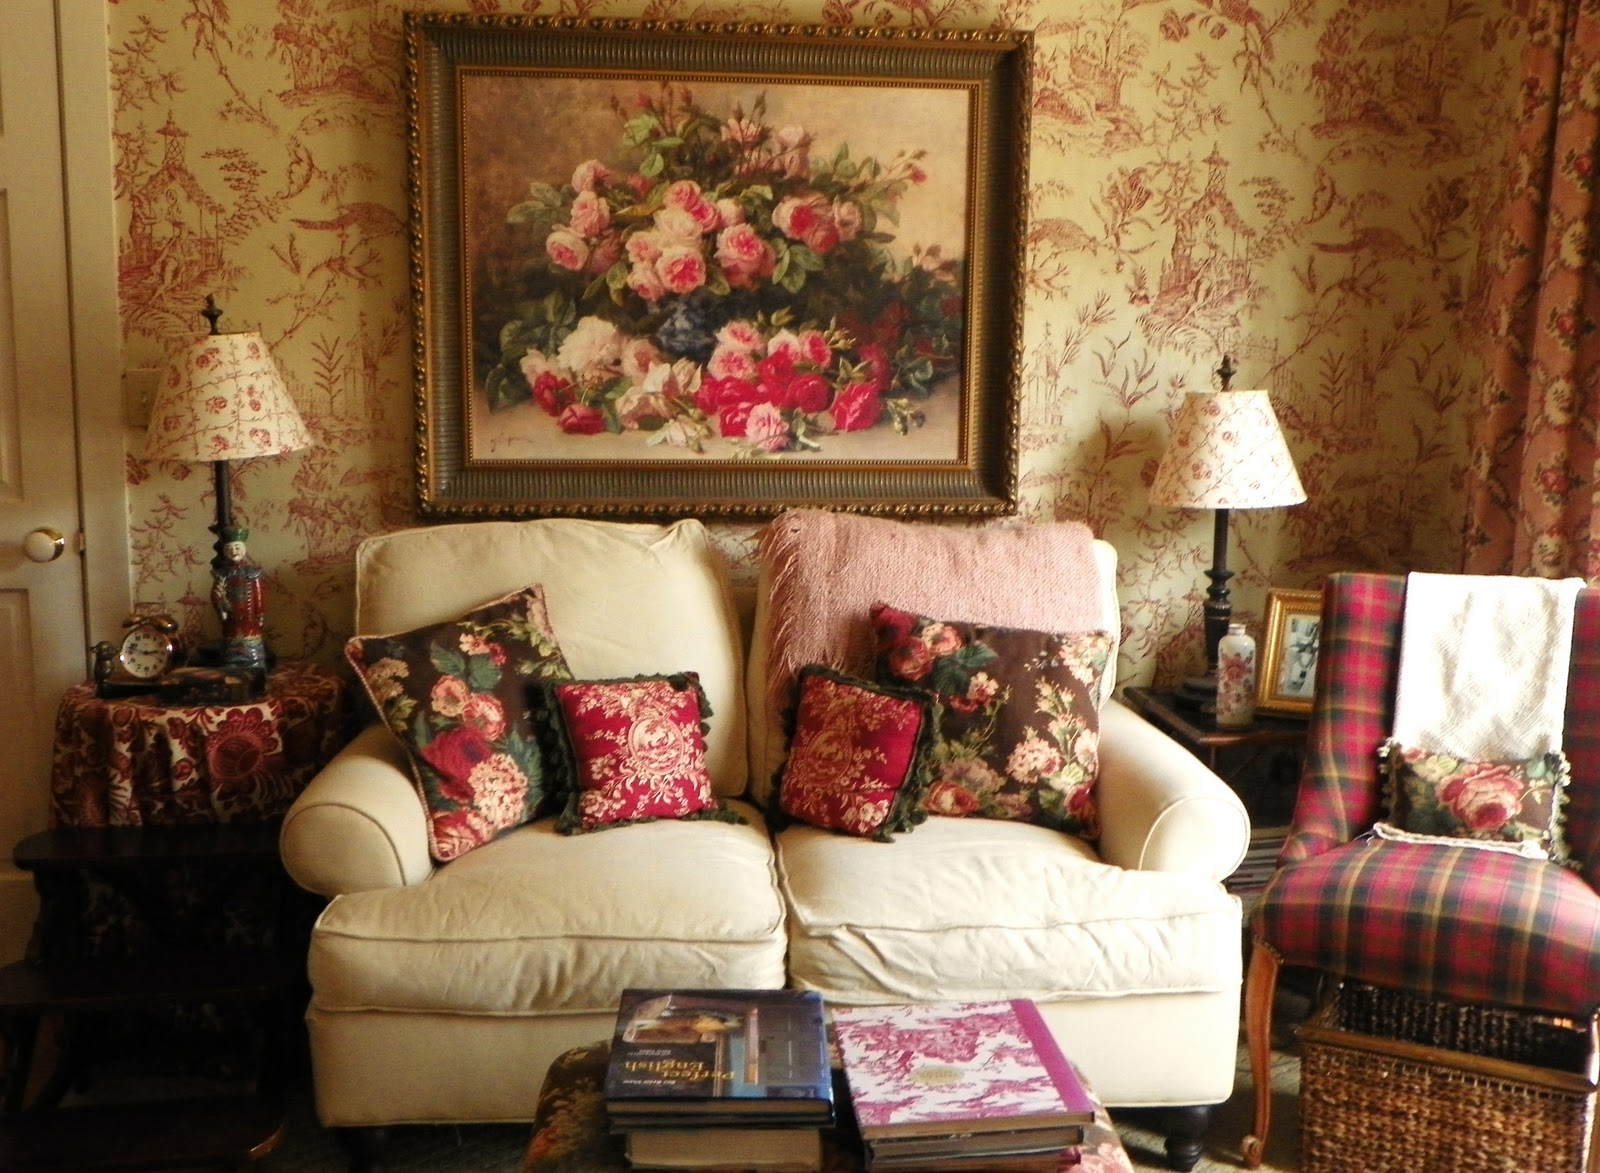 English Country Decor Cozy Room Cozy Winter Country